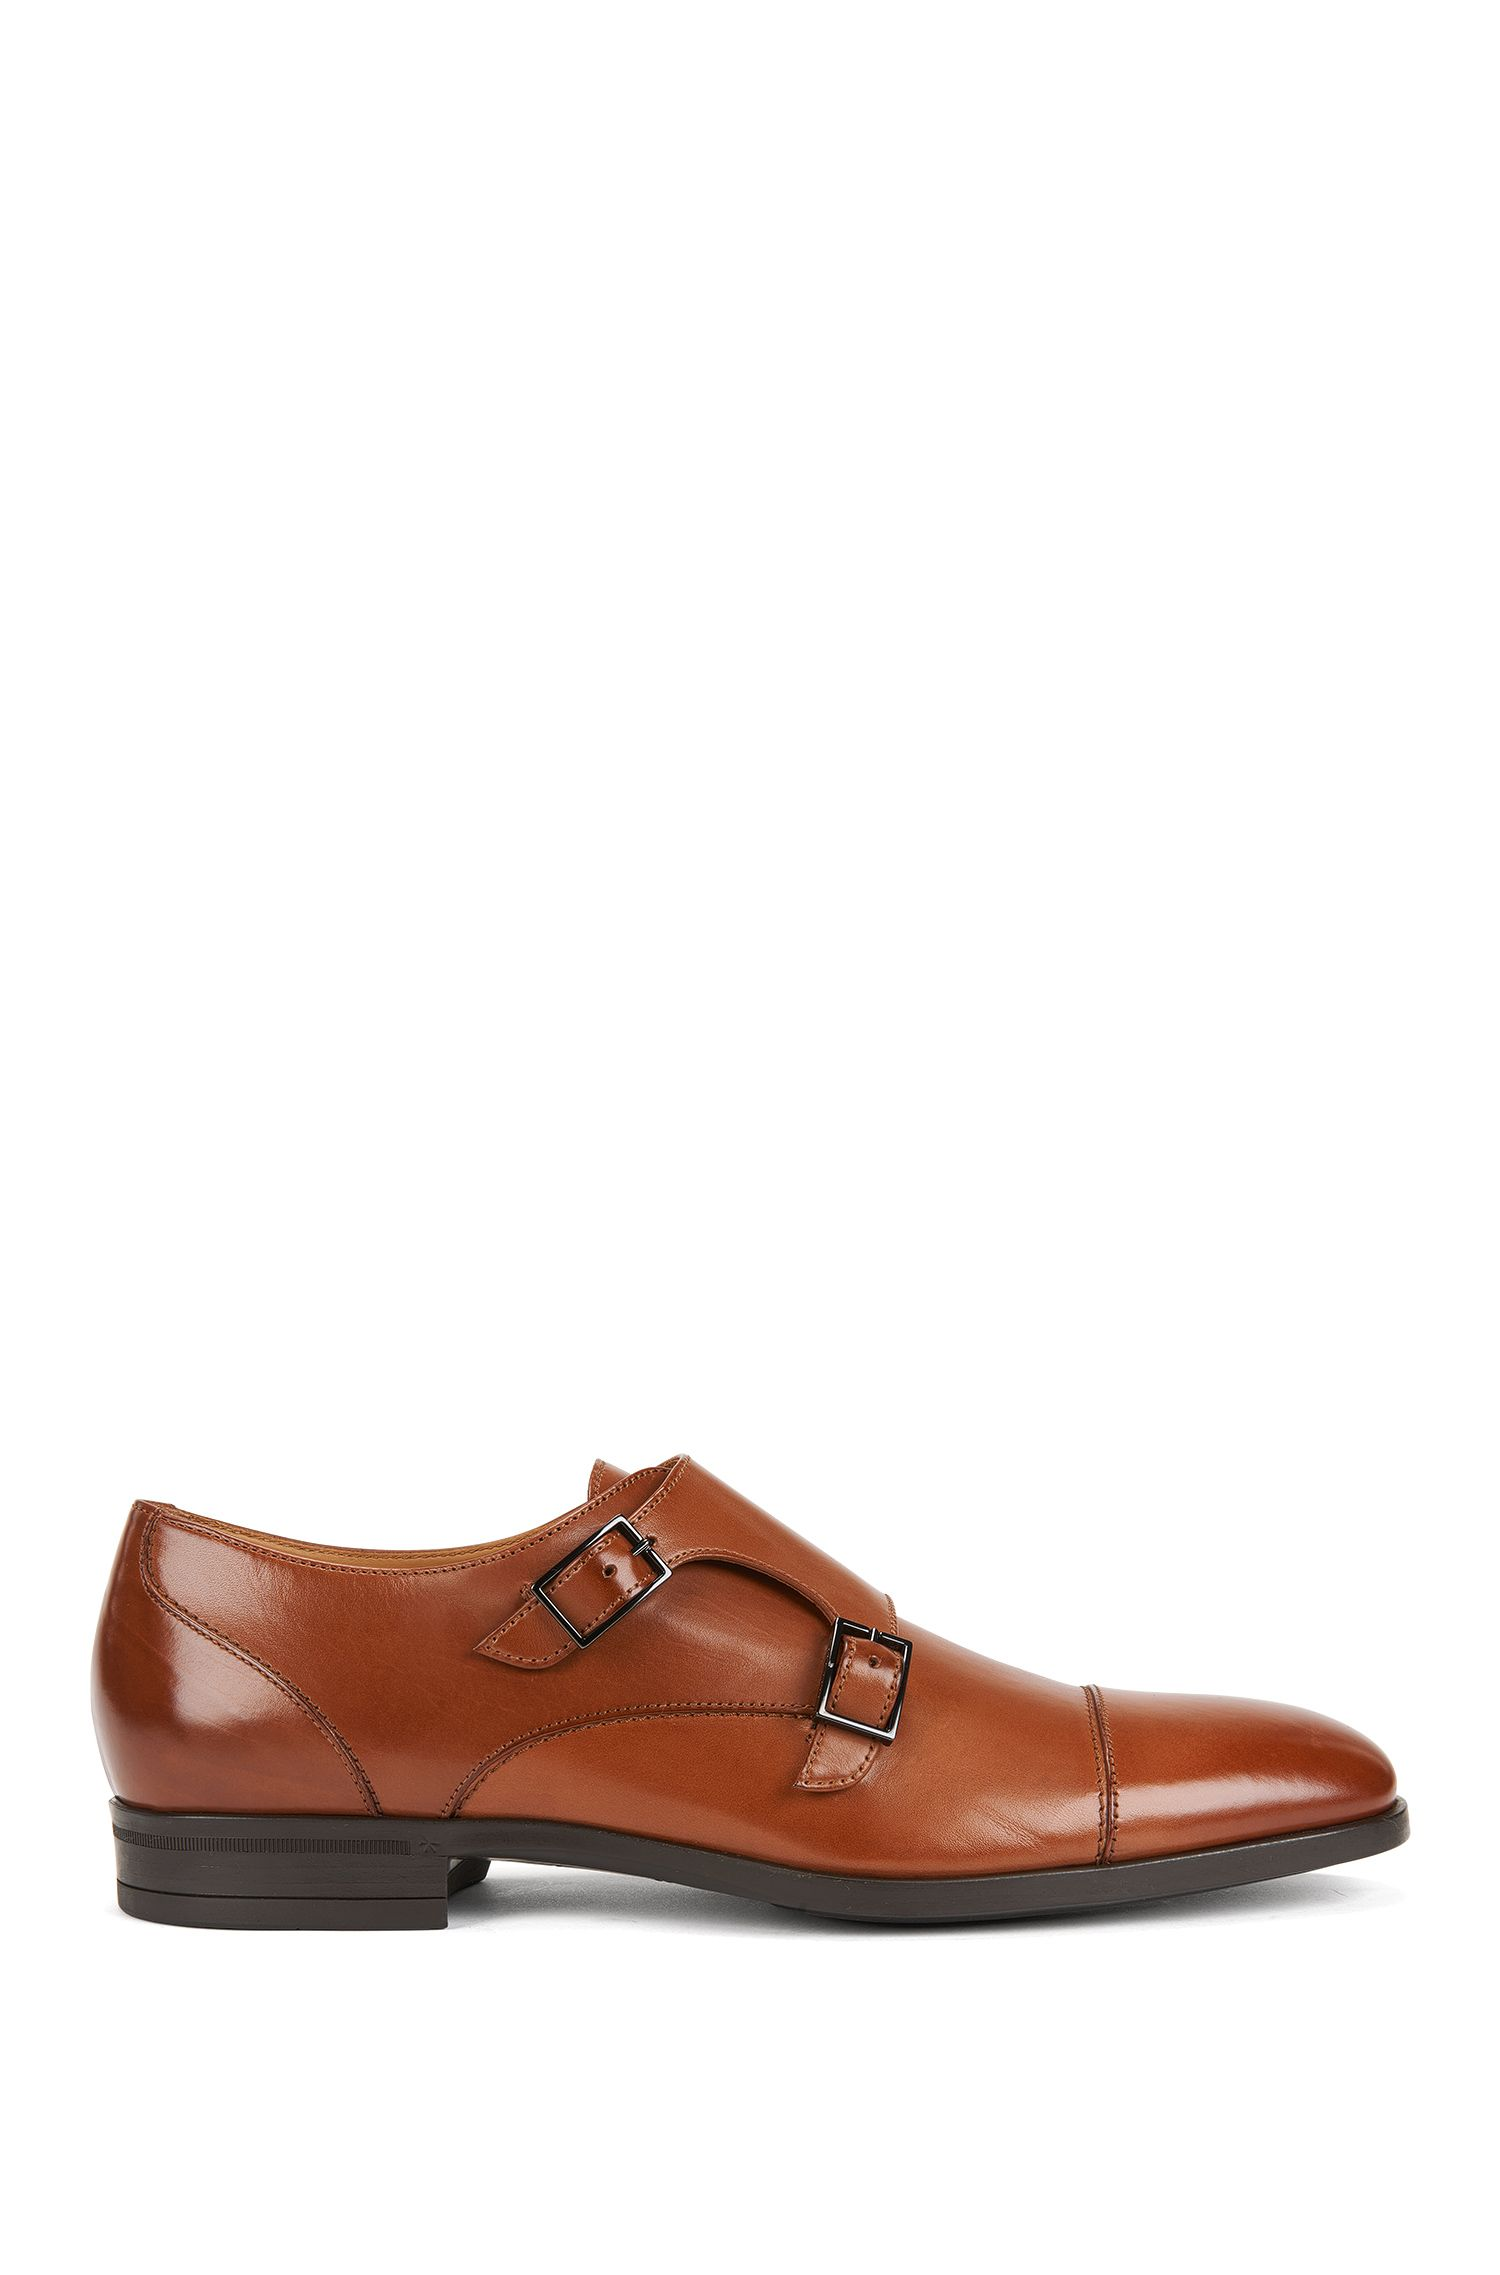 Leather Double Monk Strap Shoe | Kensington Monk Buwt